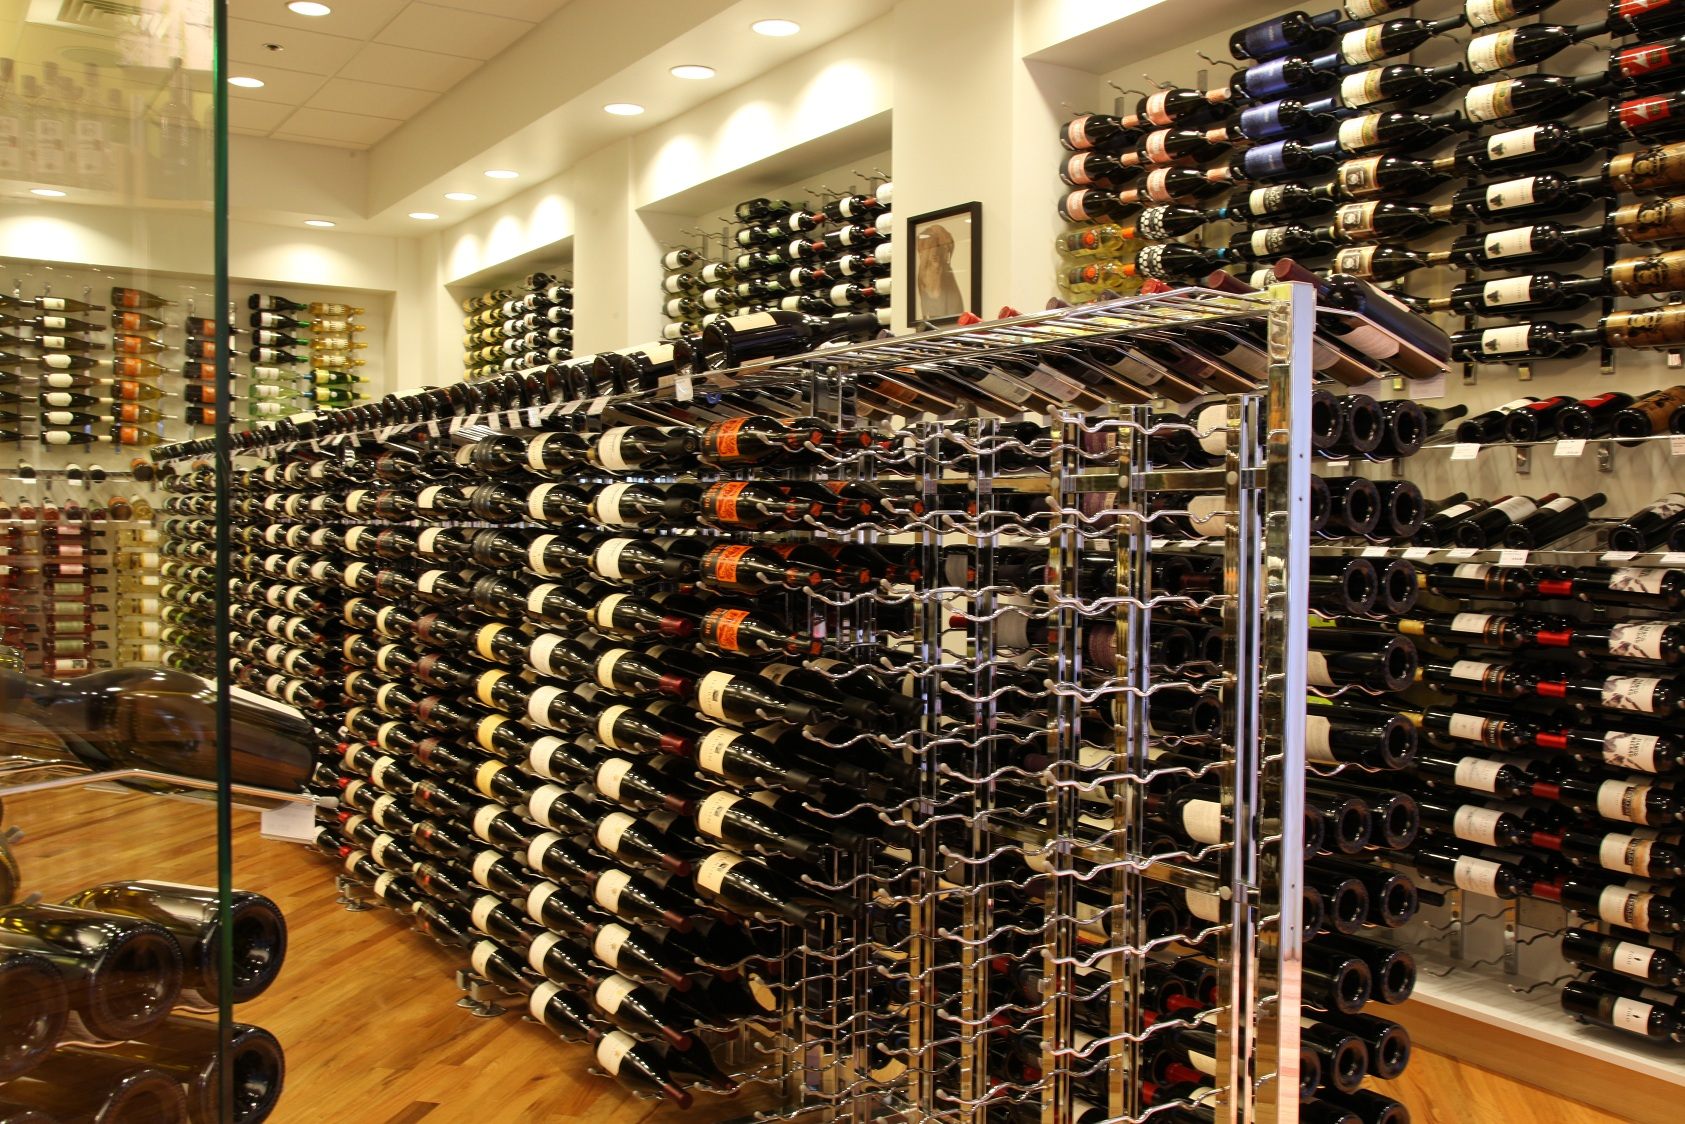 Vintageview Metal Wine Racks Now Available In Black Pearl Chrome Finishes For Contemporary Wine Cellars Coastal Custom Wine Cellars Coastal Custom Wine Cellars